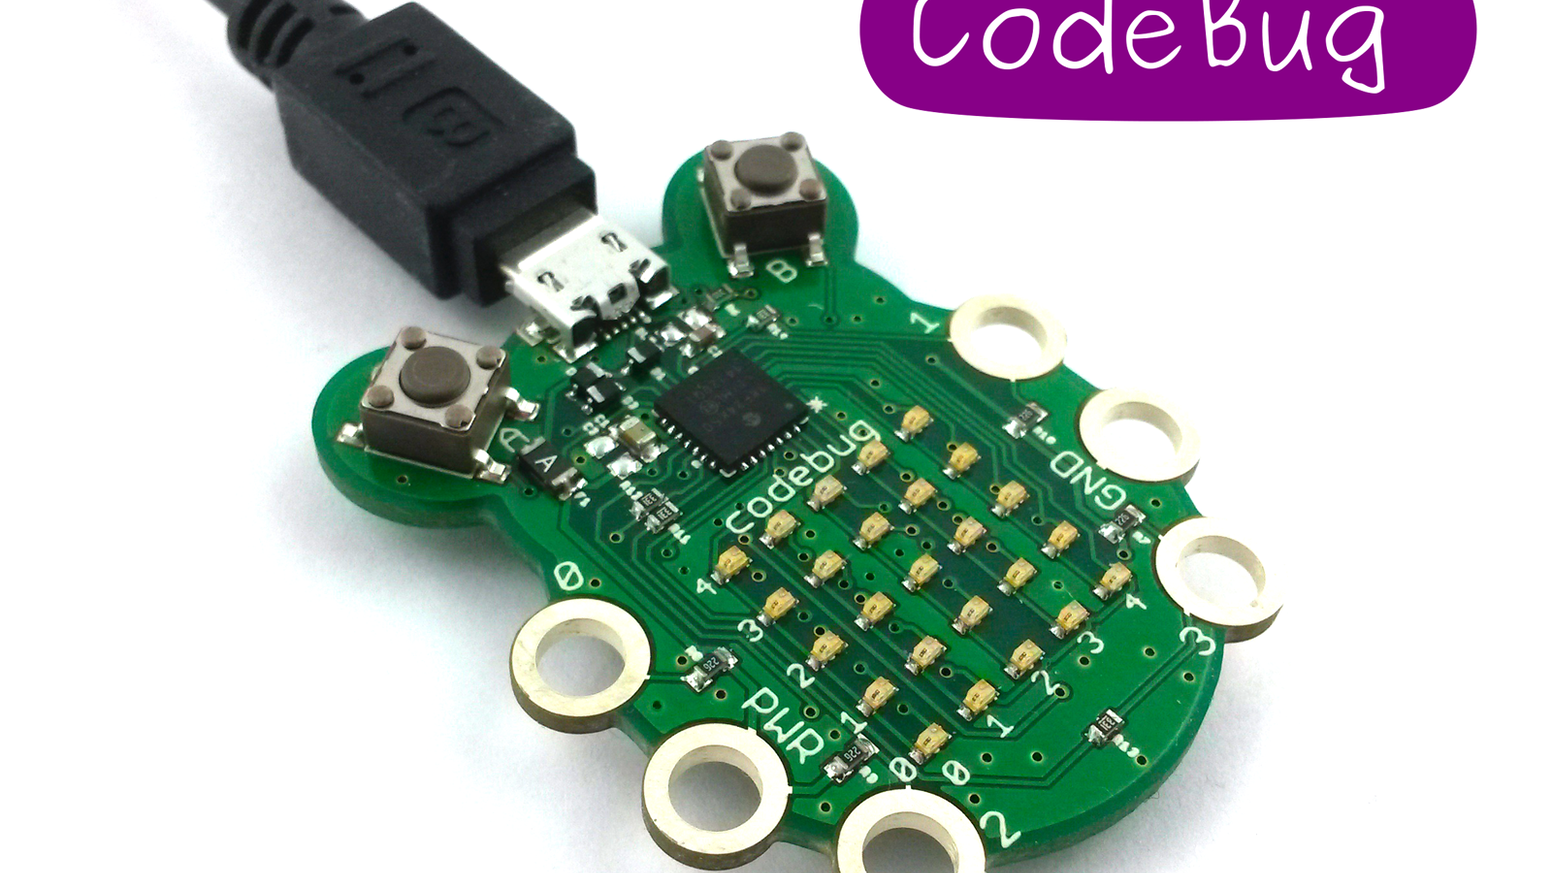 Codebug By Kickstarter Fun And Easy To Design Share Produce Electronic Circuit Boards The Cute Programmable Light Up Wearable For Everyone An Instant